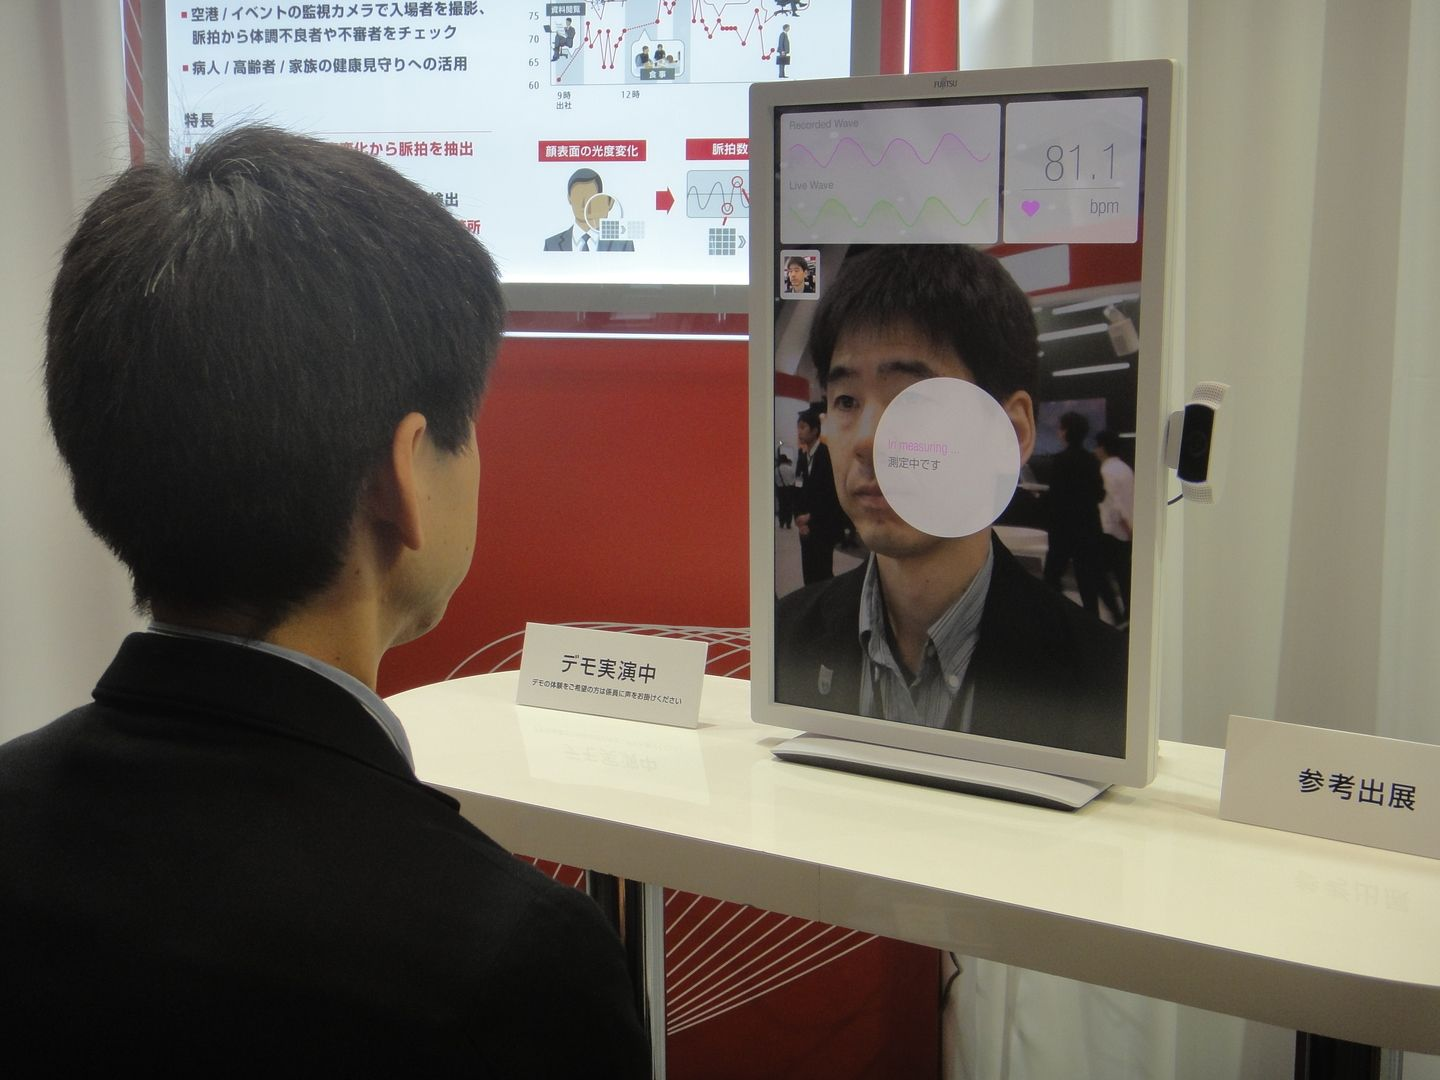 Pulse Detection Mirror Technology Could Detect Future Crimes